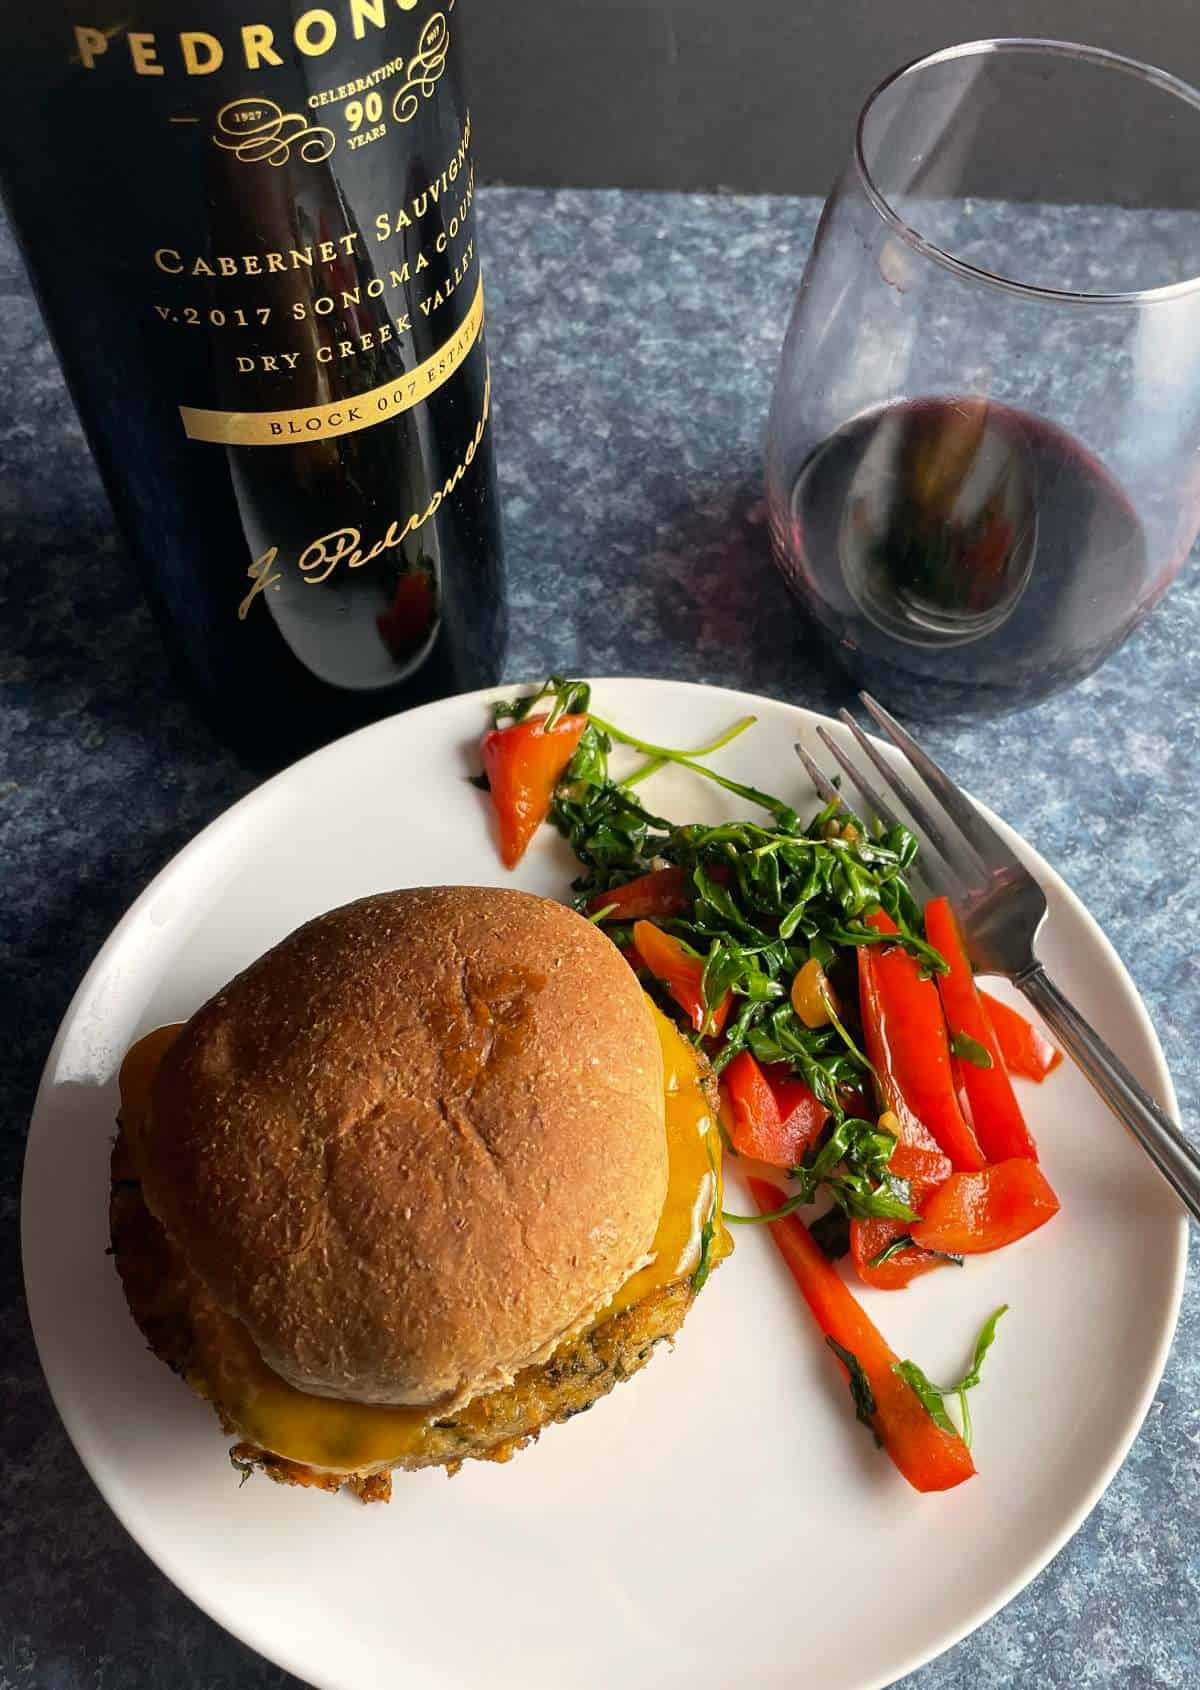 cooked arugula and red peppers on a white plate with a burger, served with a red wine.